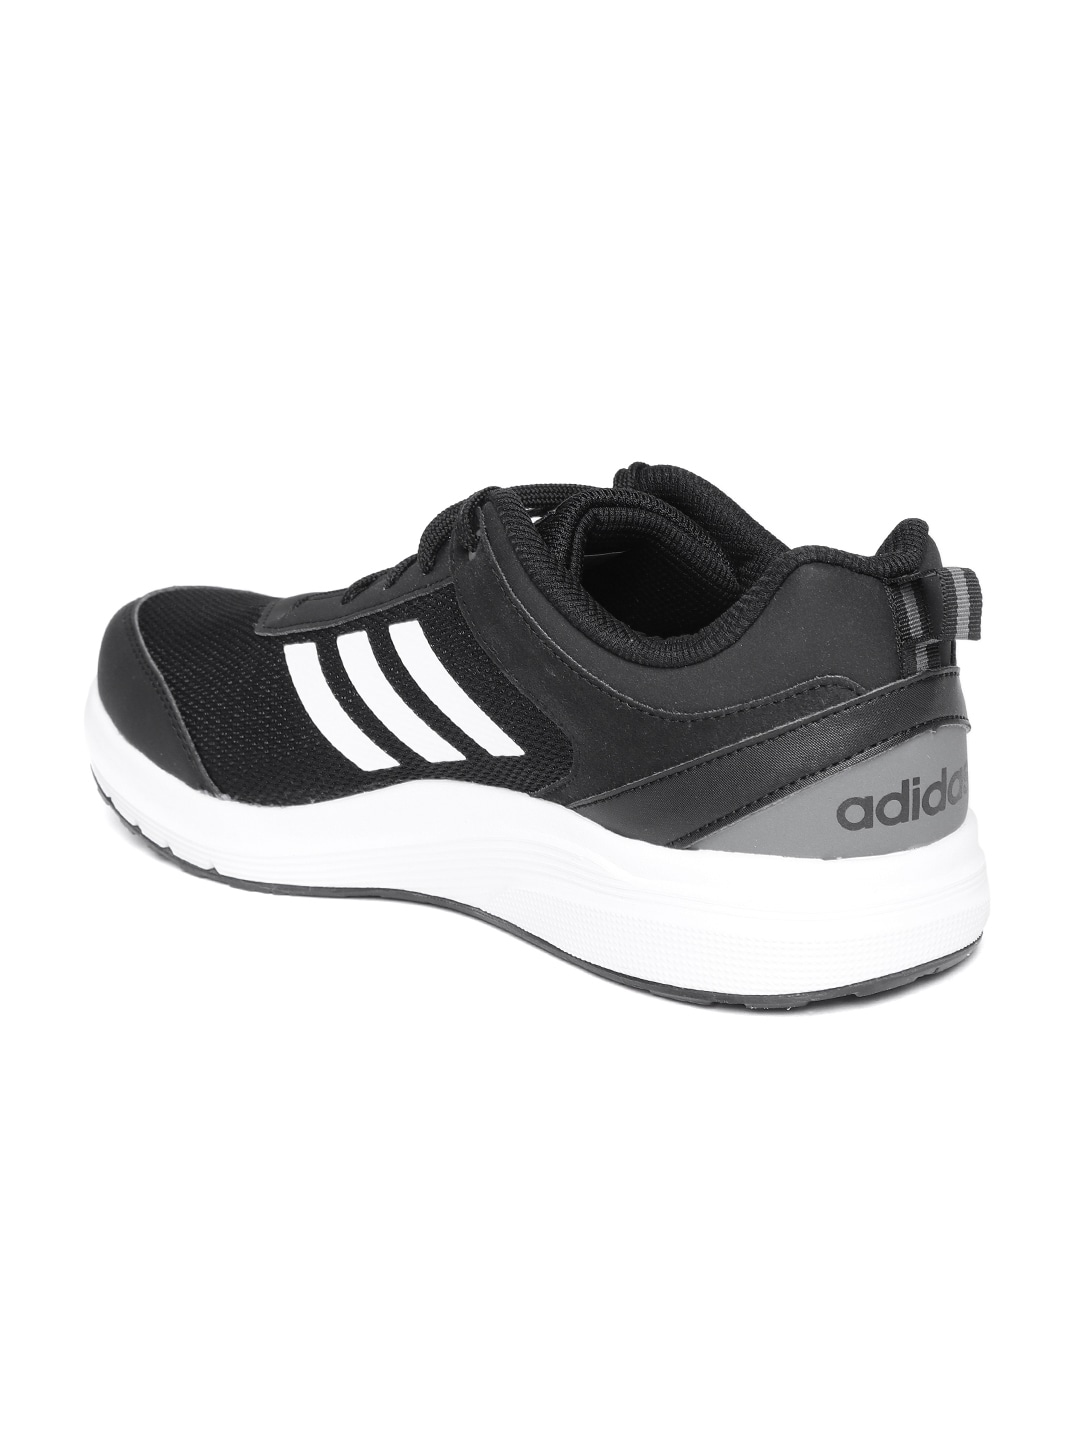 8ab1063bc01 Adidas Sports Shoes - Buy Addidas Sports Shoes Online